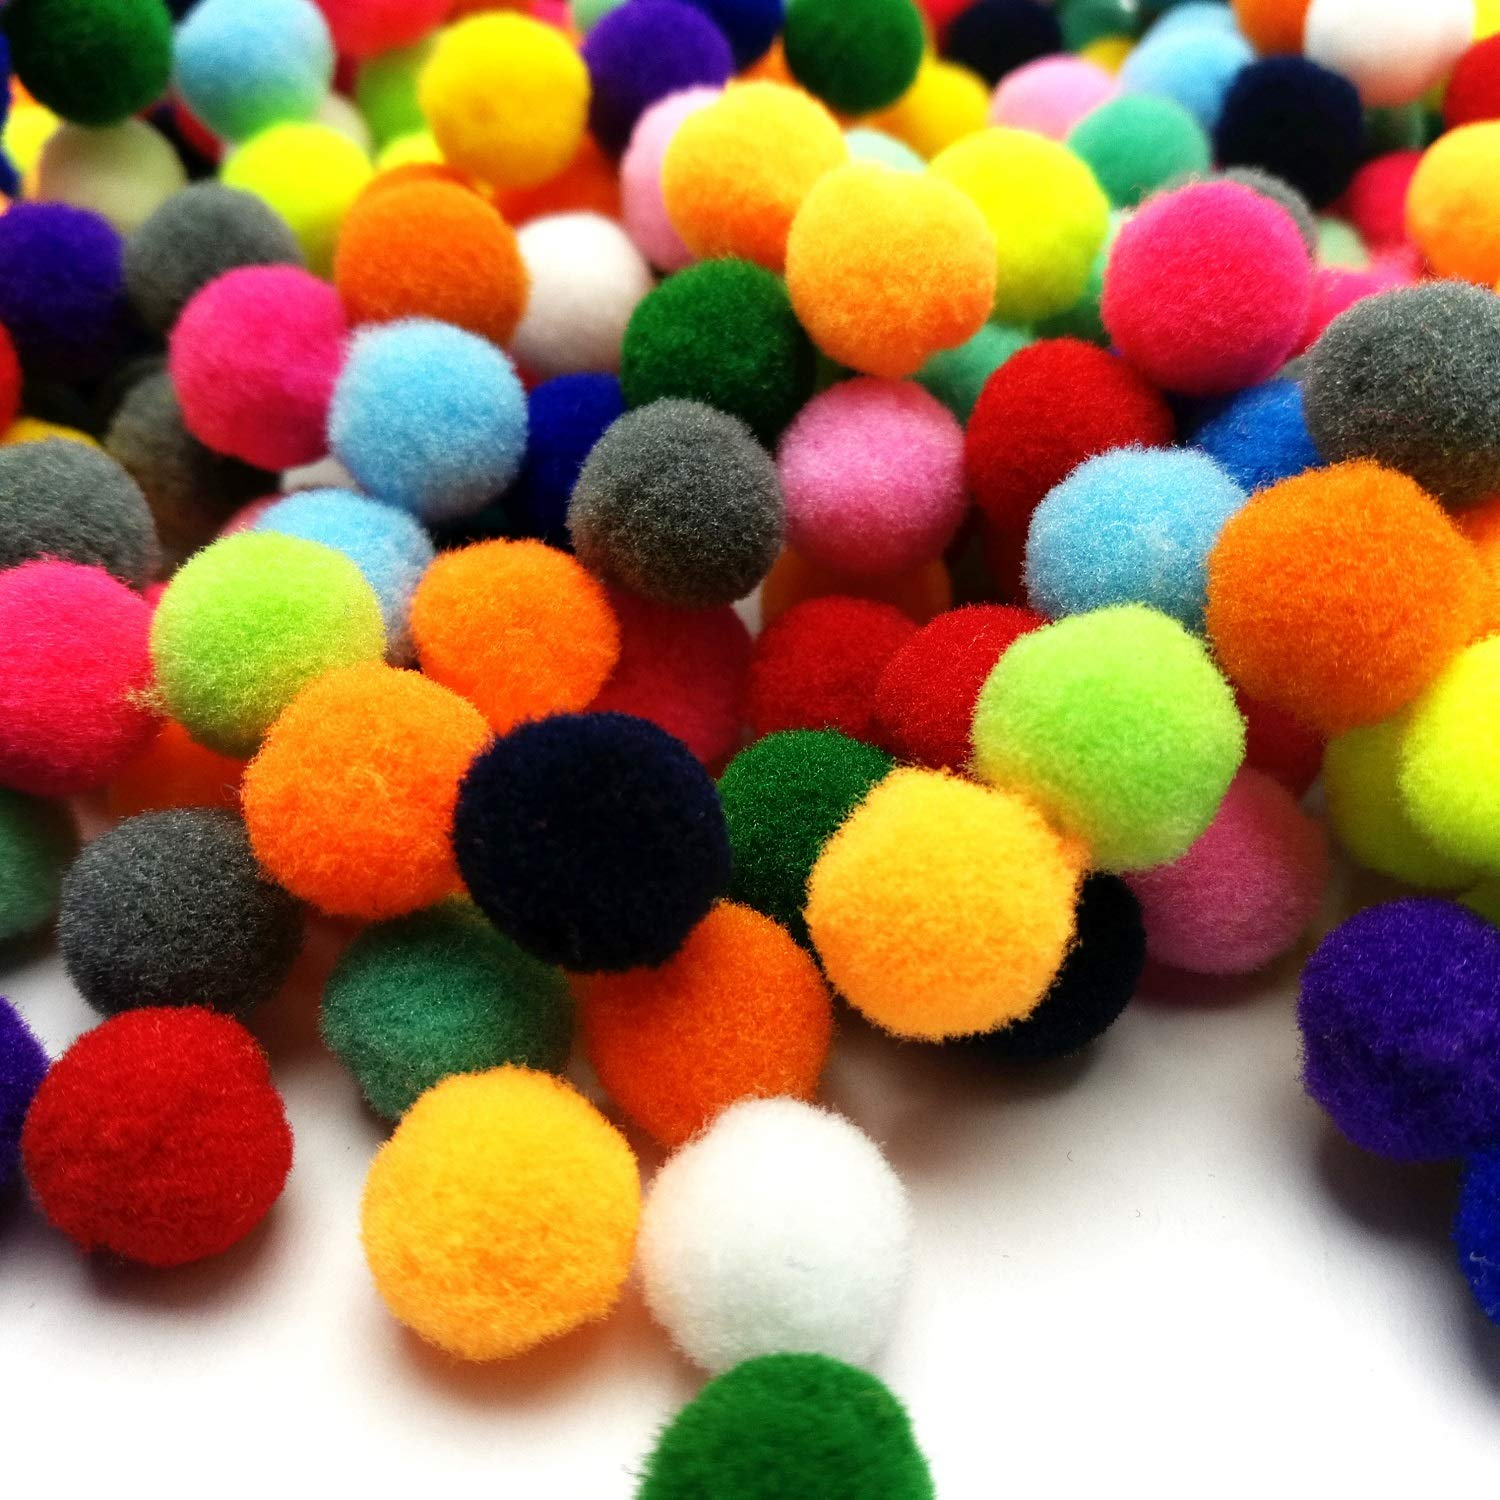 10mm Amaney 1000 Pieces 0.4 Inch Paddy Polyester Pom Poms Pompoms for Hobby Supplies and DIY Creative Crafts Decorations